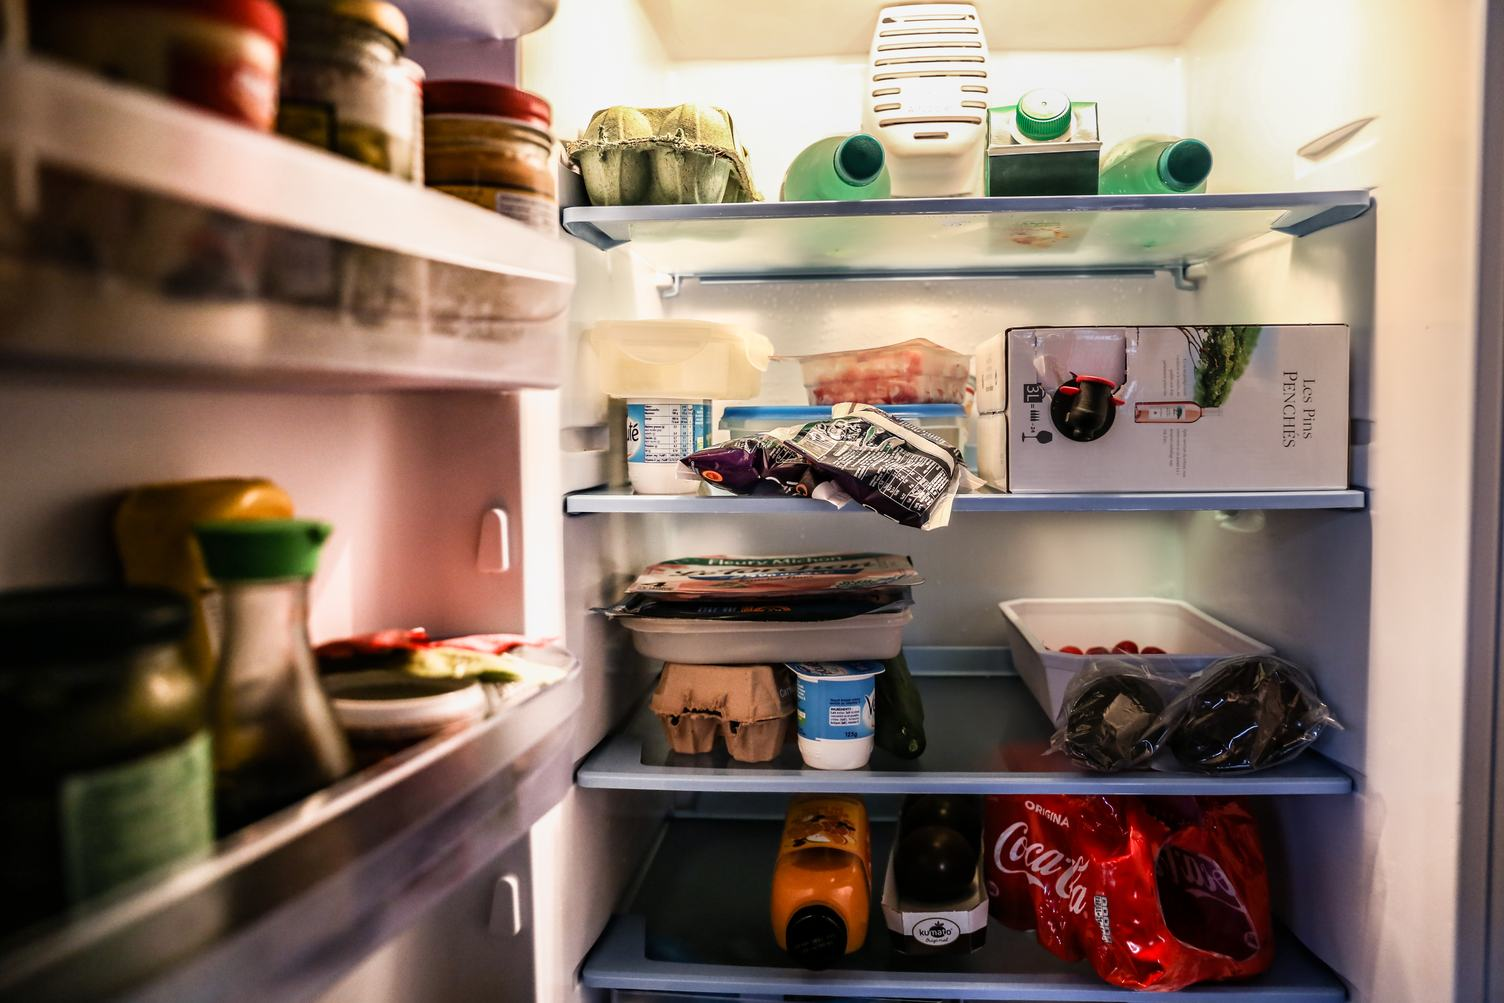 Inside of Refrigerator Filled with Food